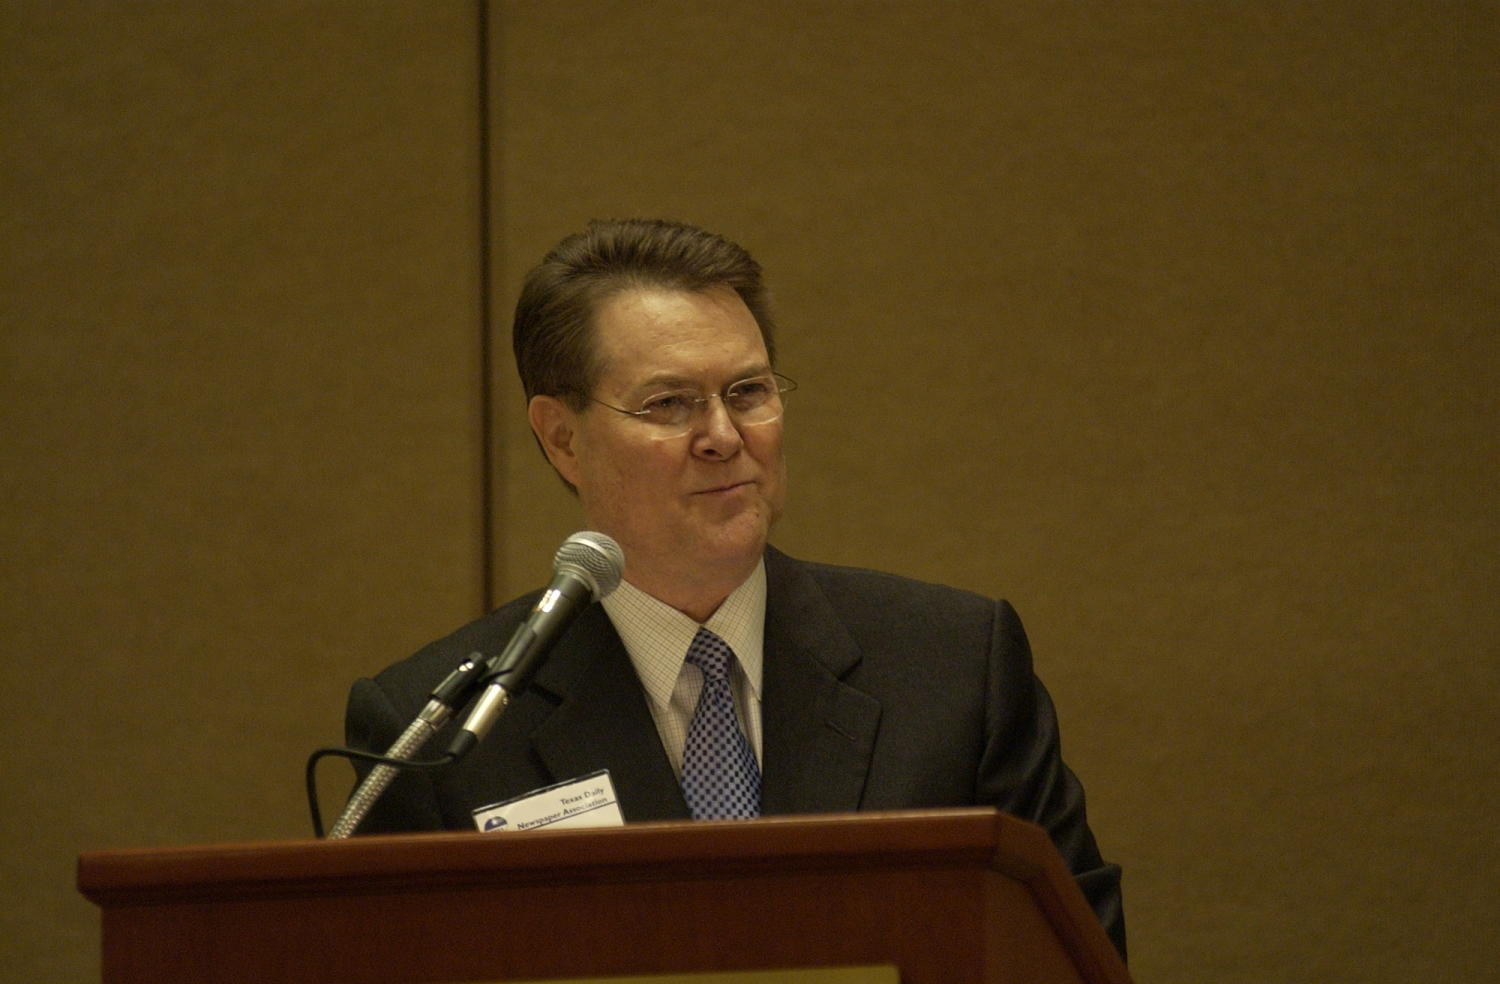 [Unidentified guest speaker at TDNA conference], Photograph of an unidentified guest speaker attending the 2004 Texas Daily News Association annual conference held in Corpus Christi. The guest is standing at a podium in the conference hall and talking into the microphone addressing the attendees.,